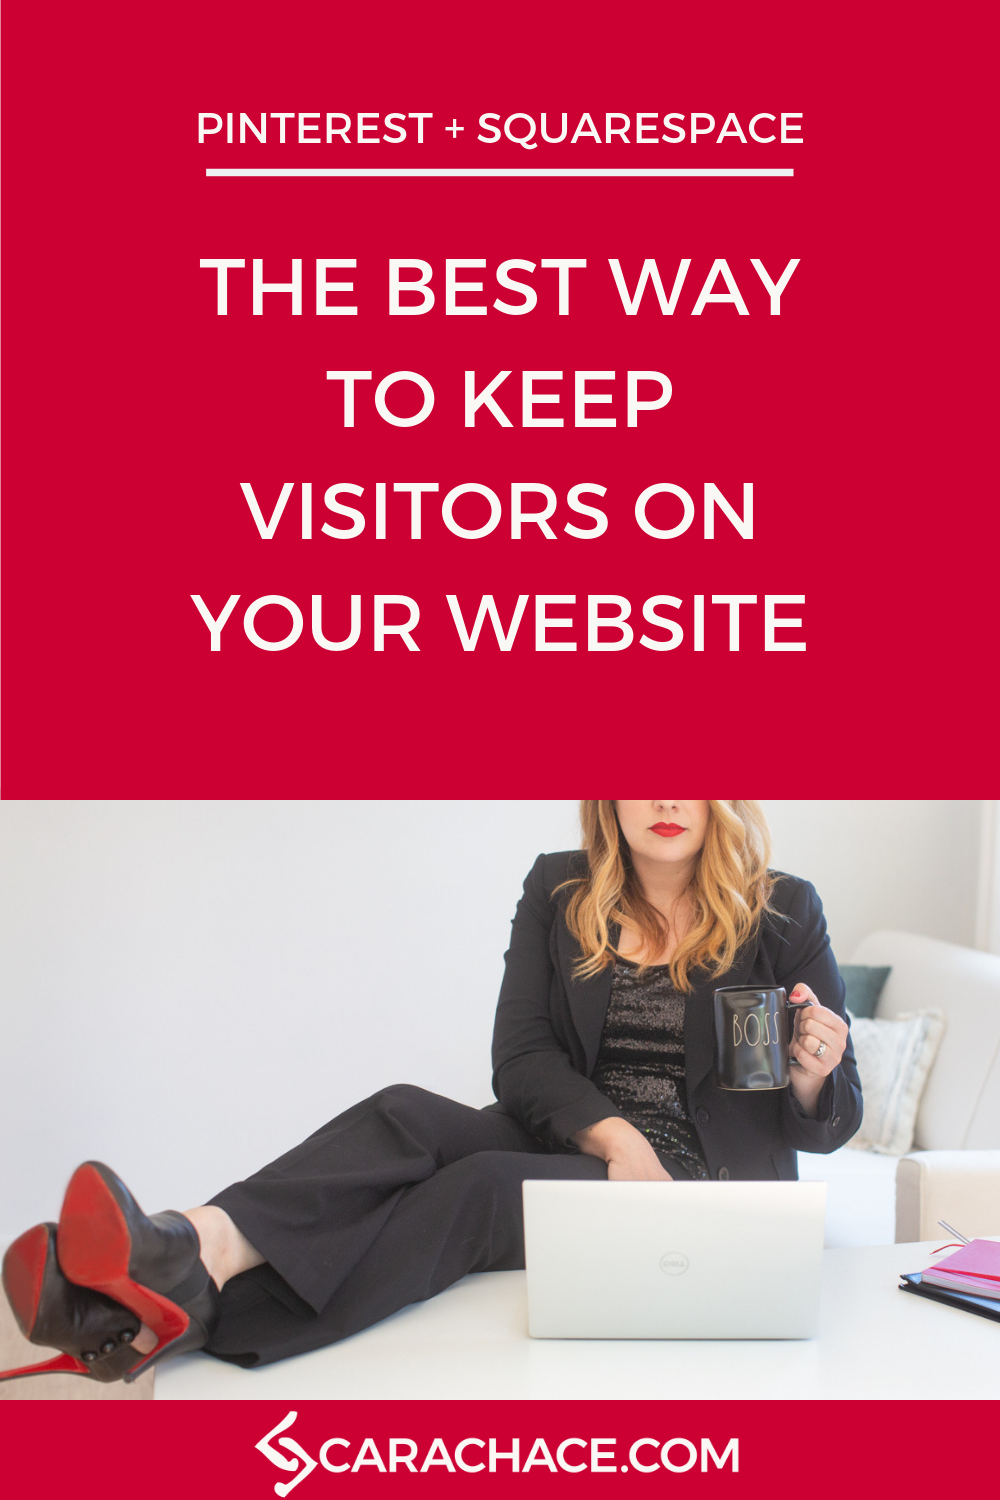 The Best Way To Keep Visitors On Your Website Pin 1.png